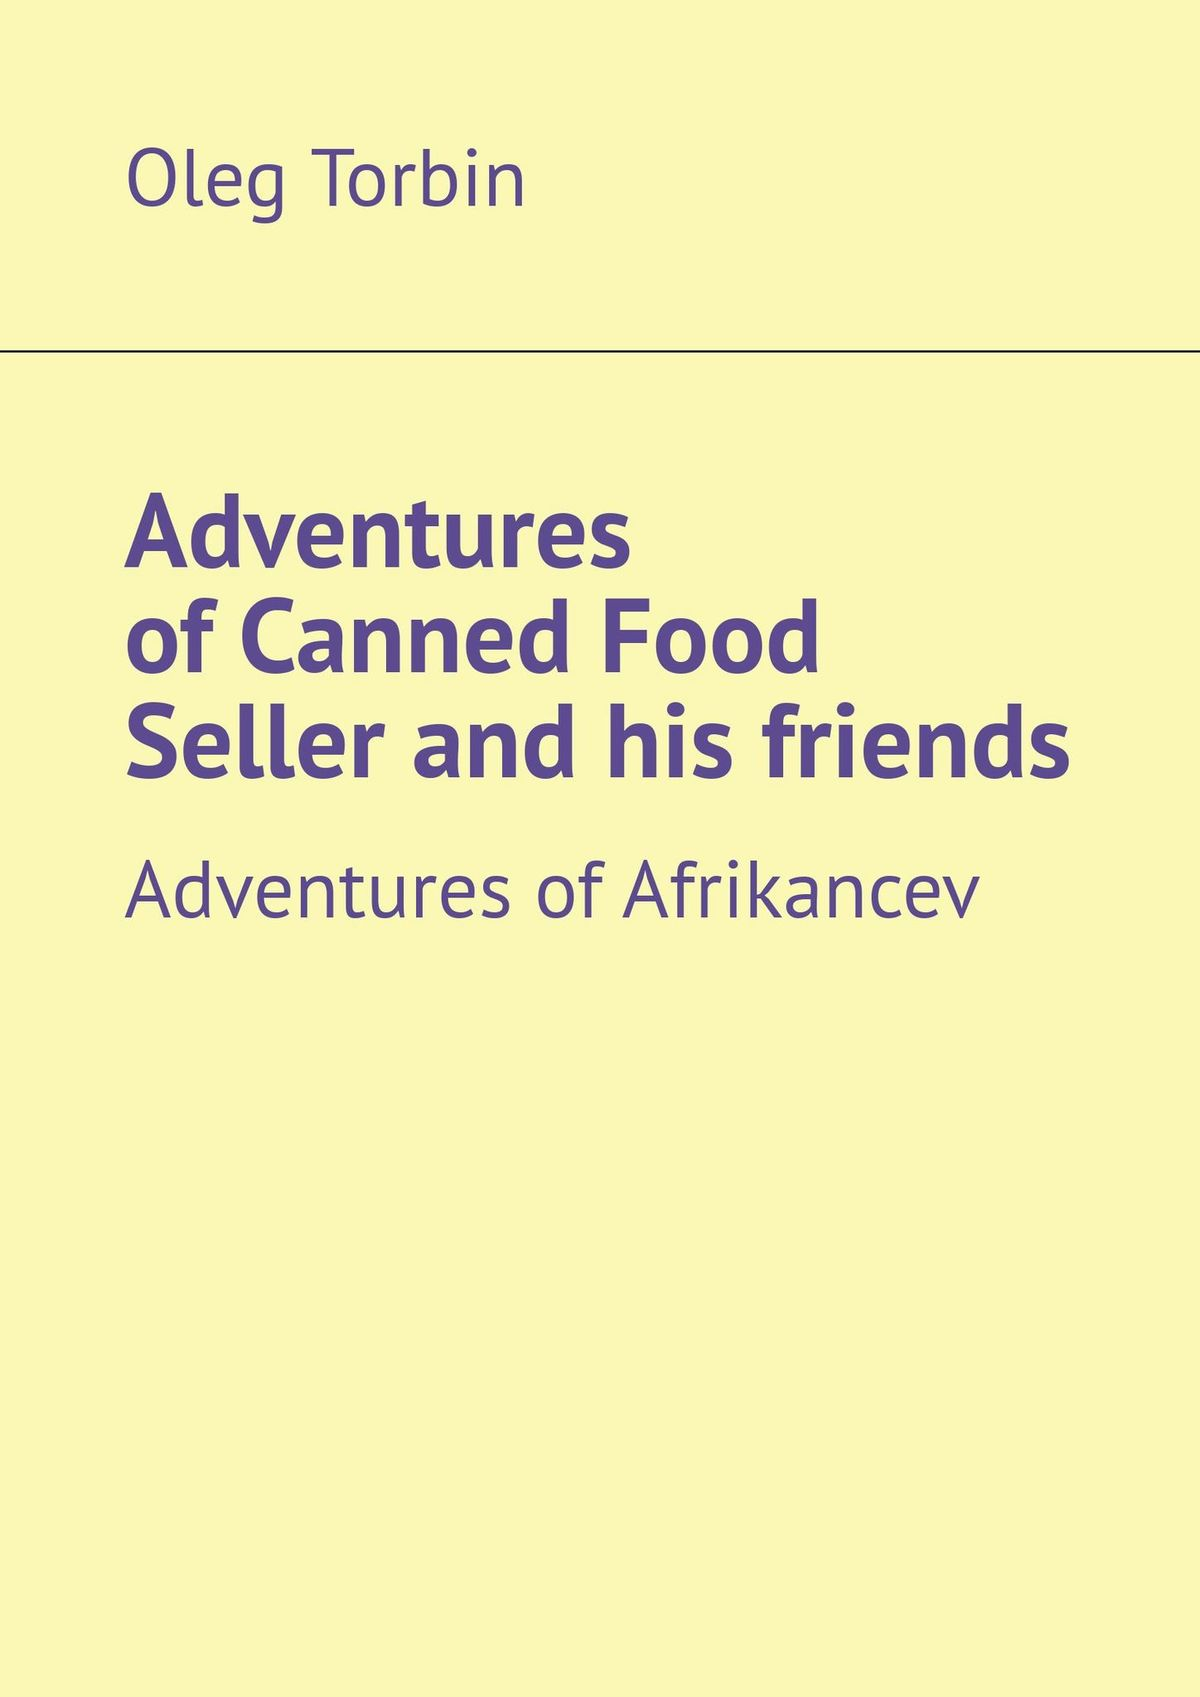 TOV Adventures of Canned Food Seller and his friends. Adventures of Afrikancev